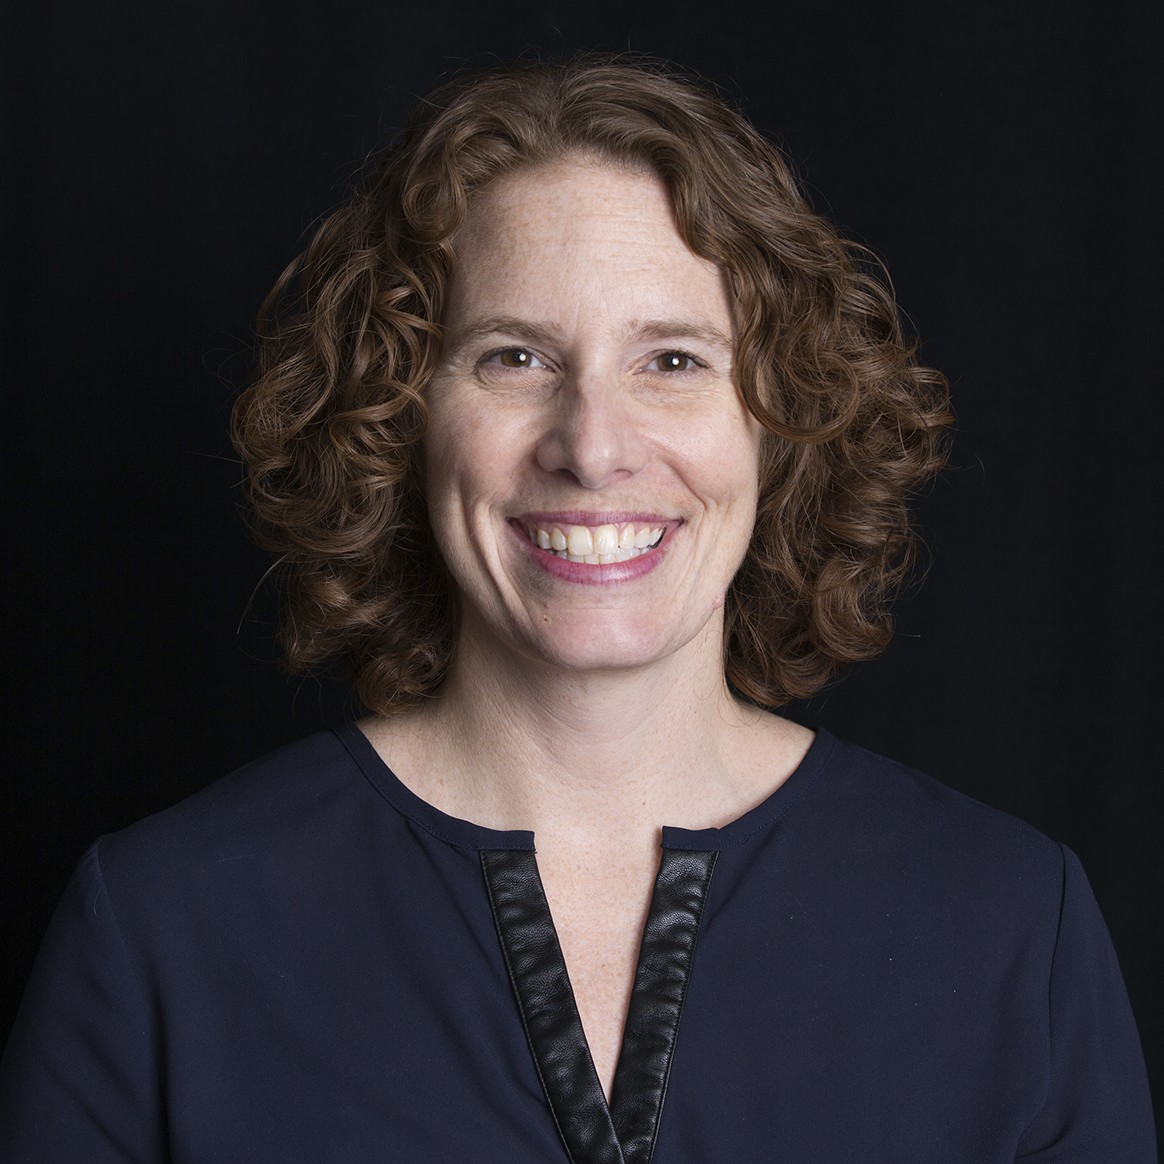 Portrait of Penn State Department of Architecture Assistant Professor Cathy Braasch